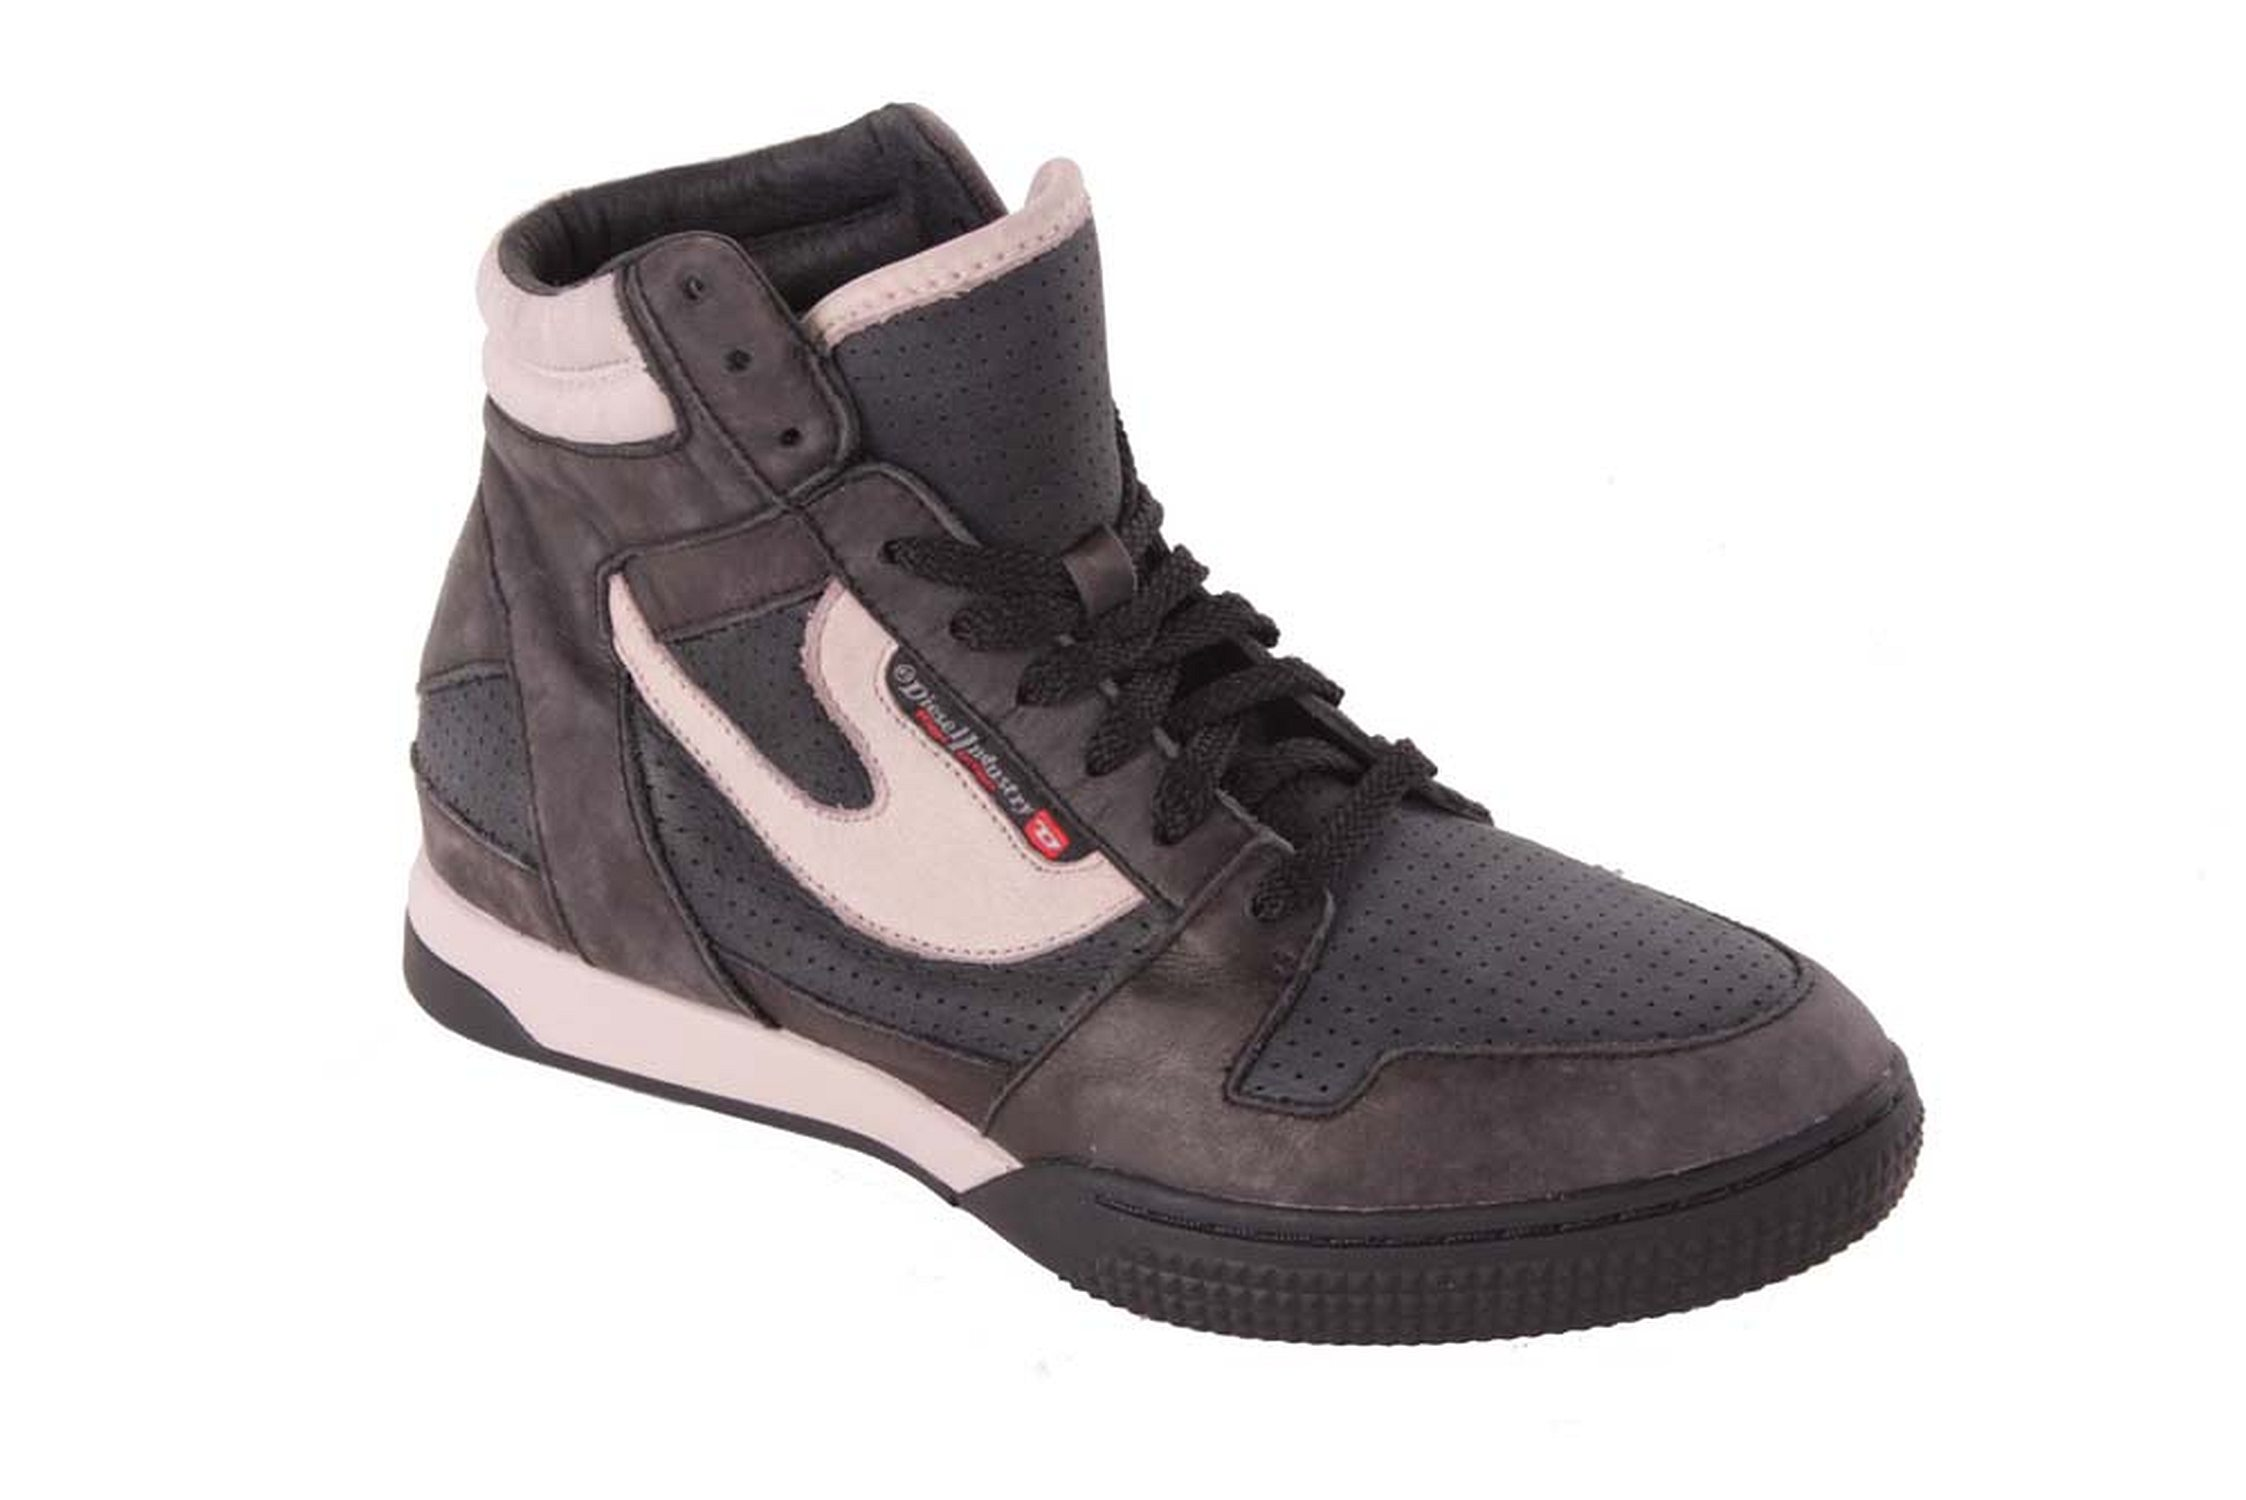 Diesel Women's Sneakers Boots Shoes s-Boxellen Grey #140 ...